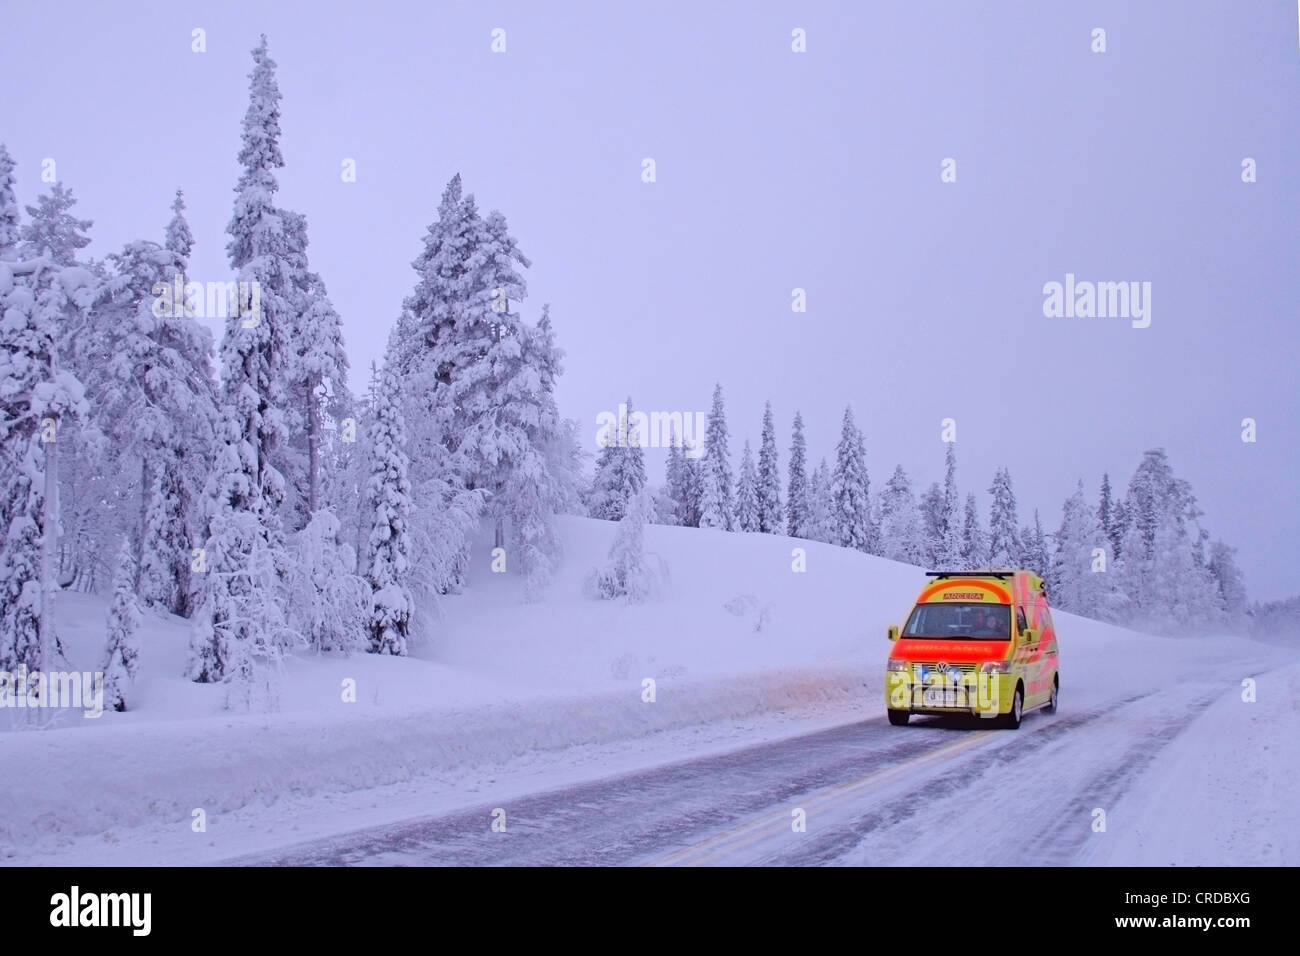 Snowy pine and fir trees and Levi ambulance, Finland, Lapland - Stock Image